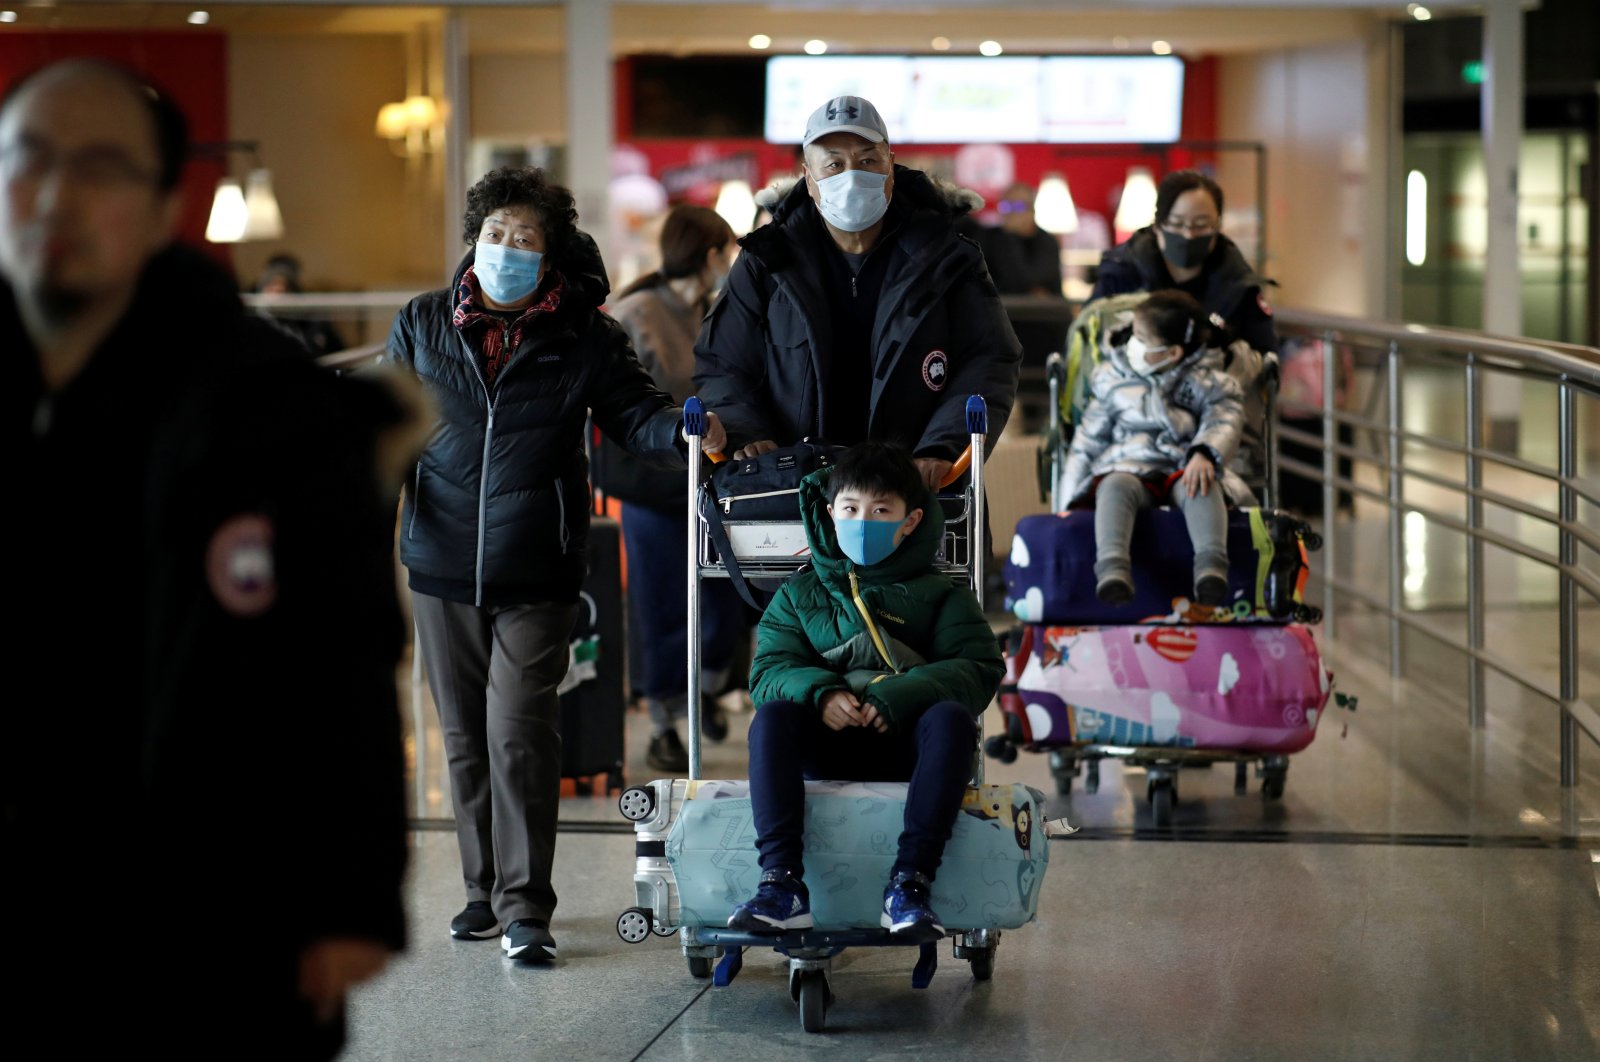 Tourists from an Air China flight from Beijing wear protective masks as they arrive at Charles de Gaulle airport in Paris, France, Jan. 26, 2020. (Reuters Photo)